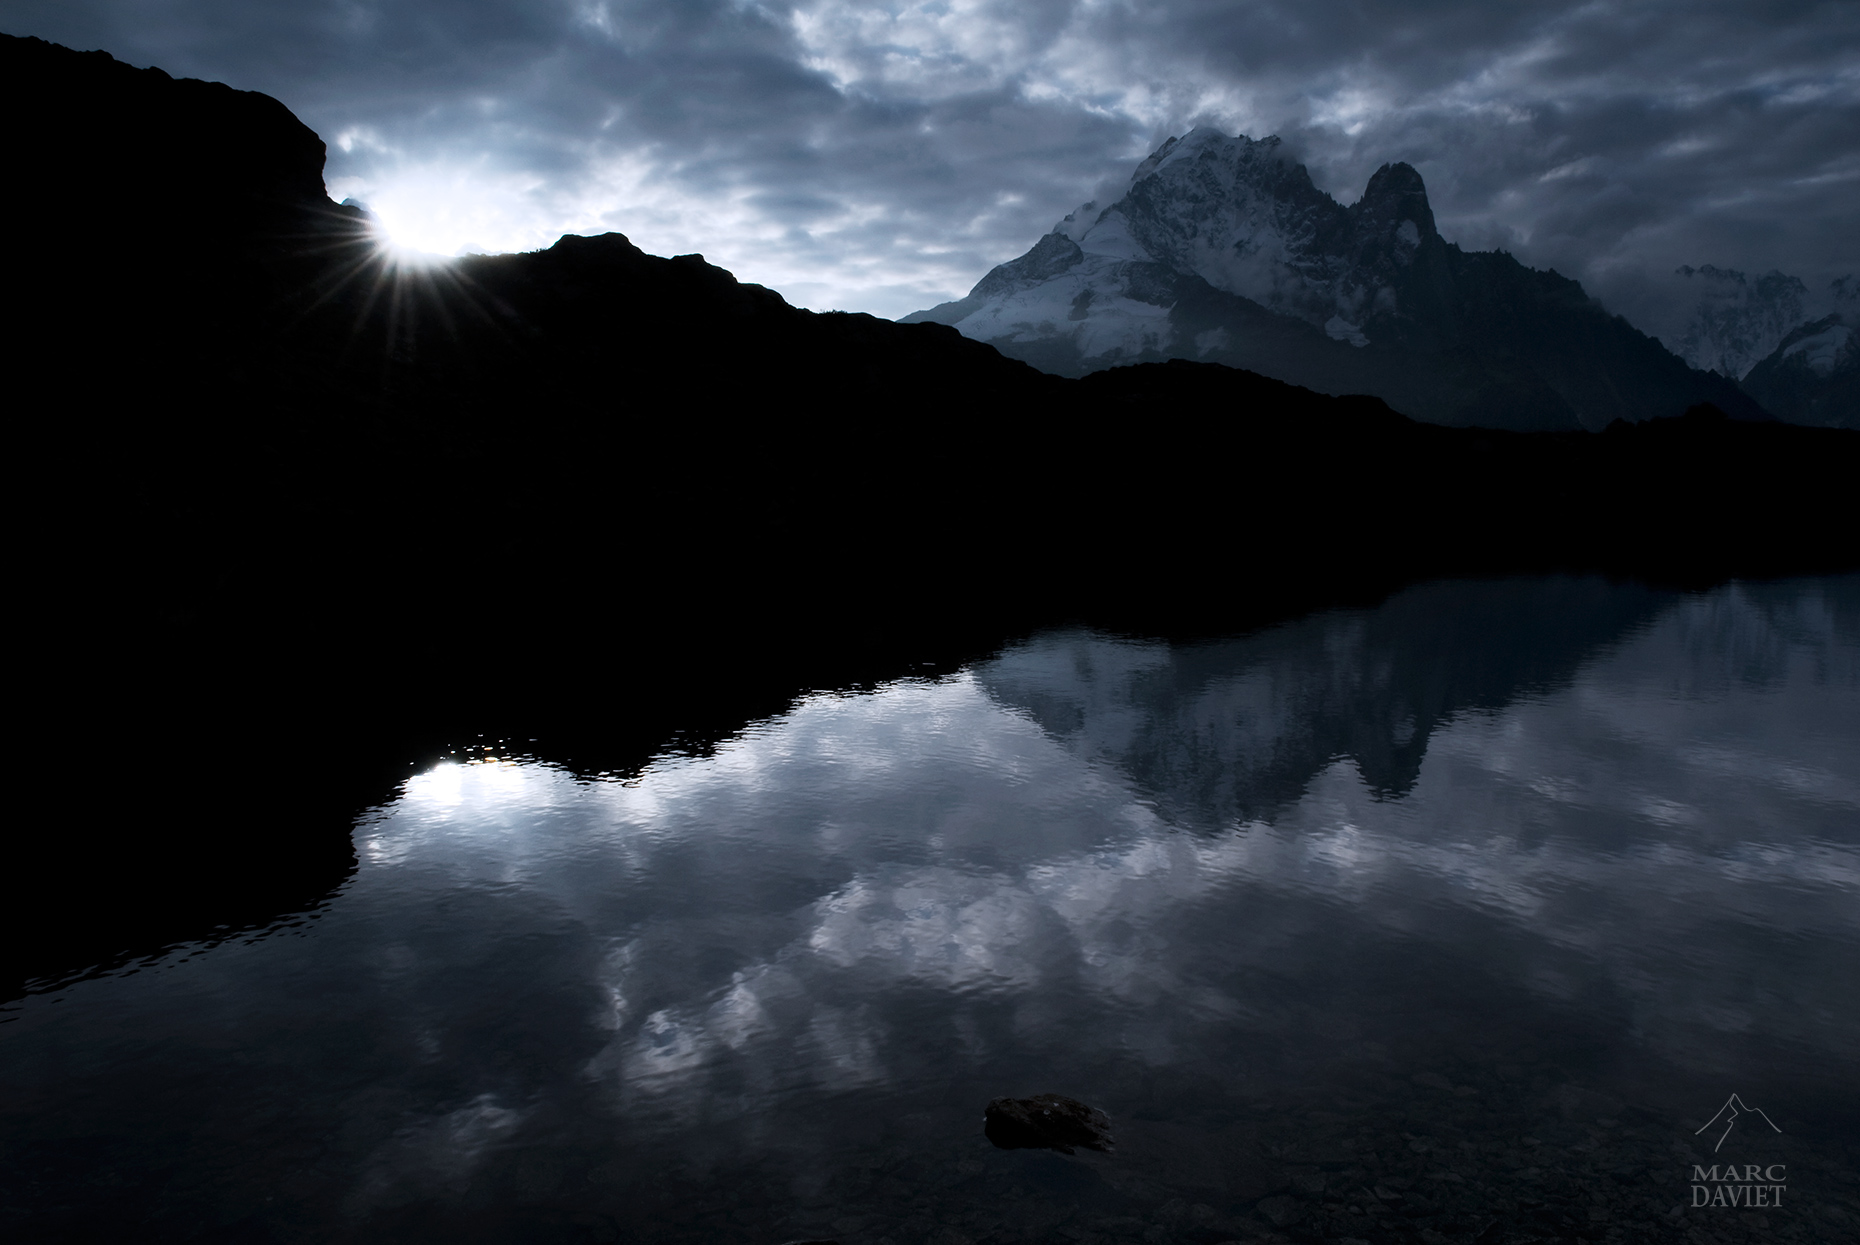 Chesery Lake - Chamonix - Marc Daviet Photography